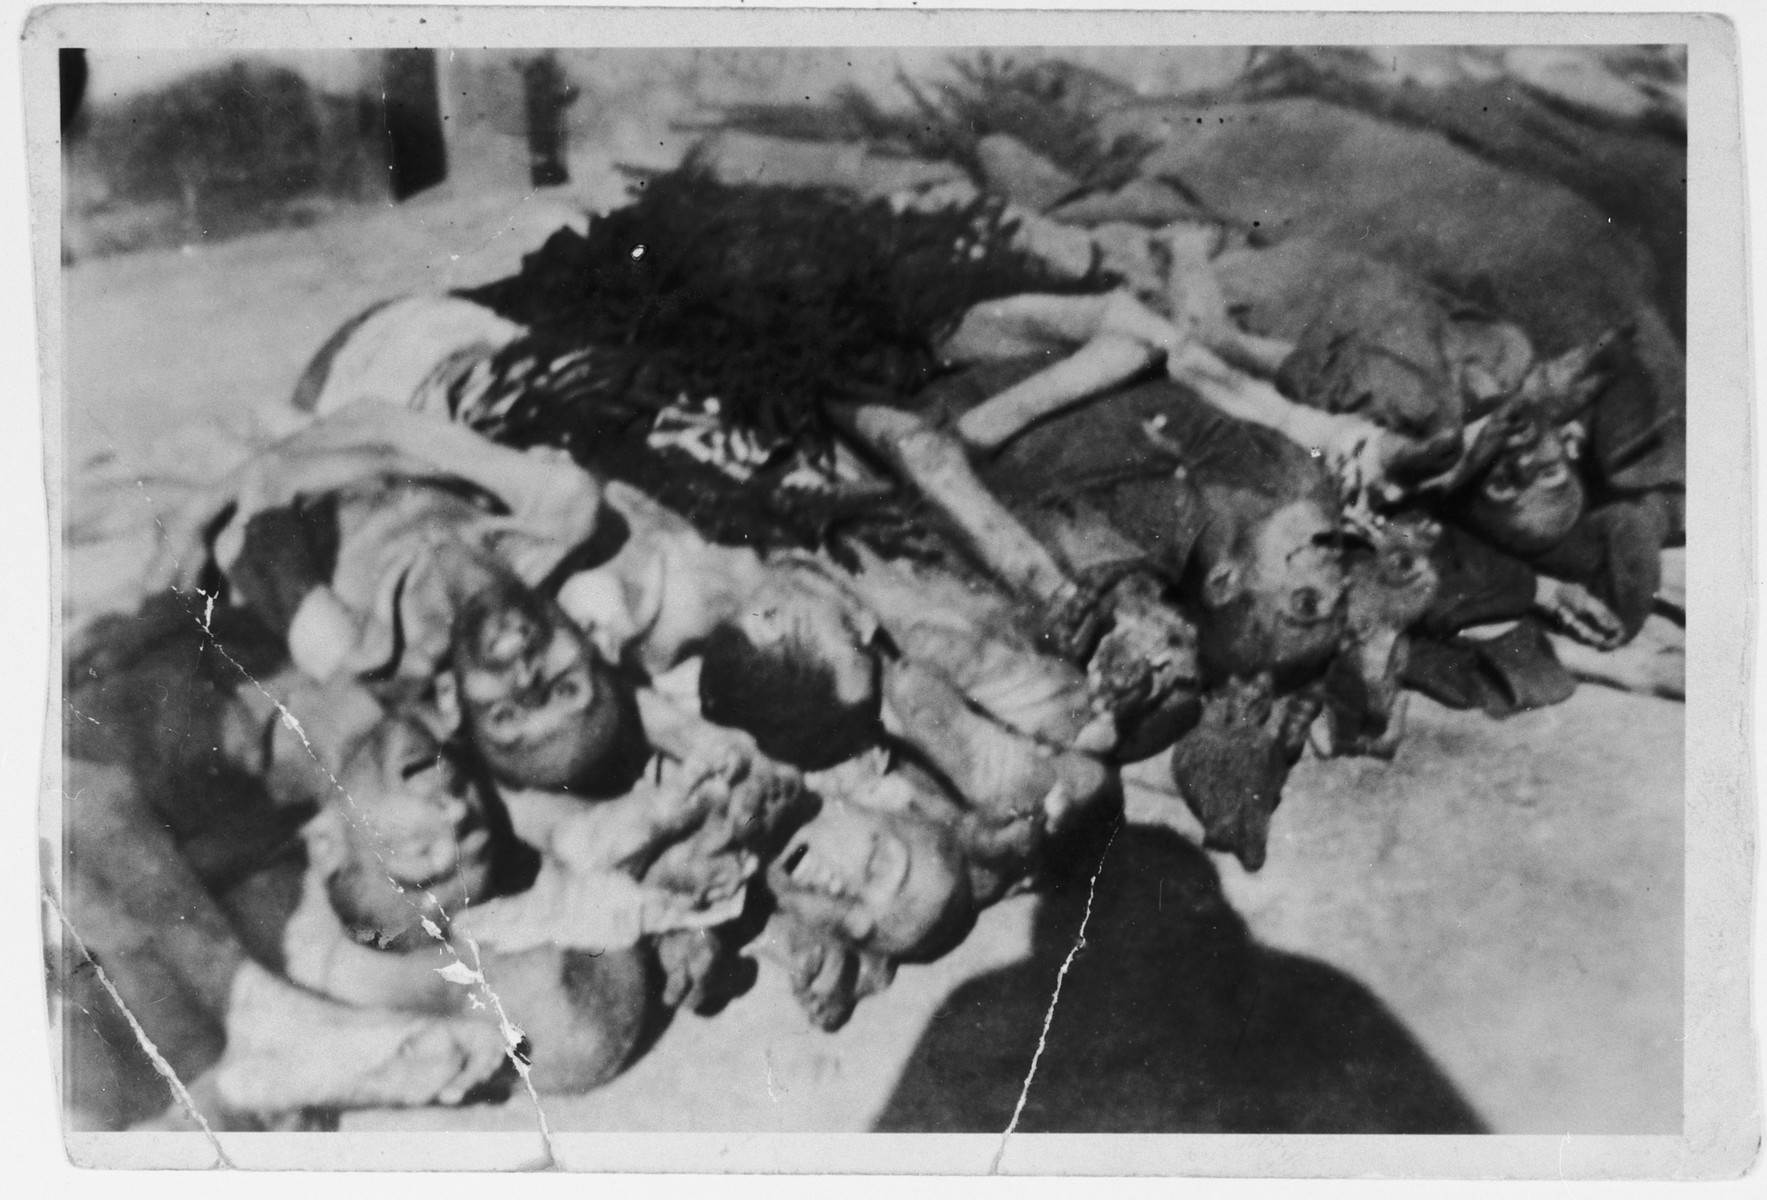 A pile of corpses awaiting burial in the Ebensee concentration camp.